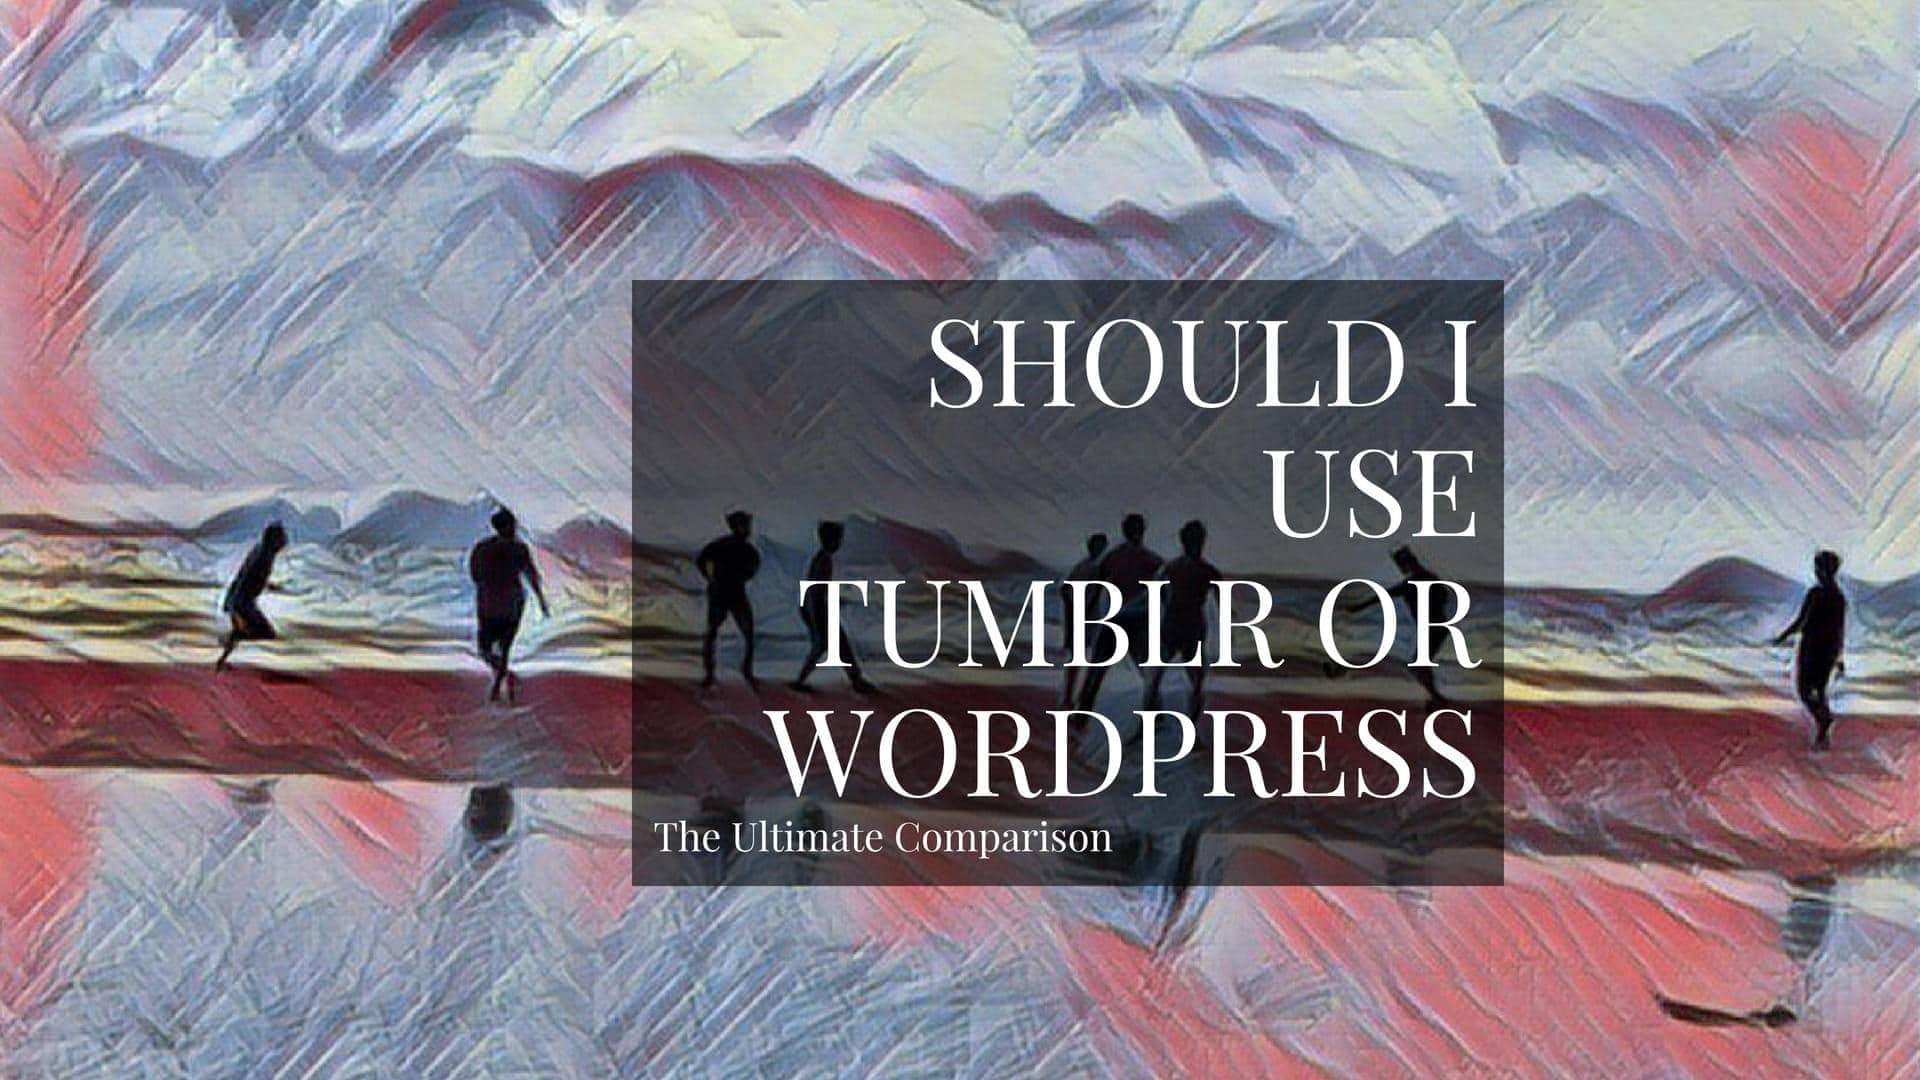 Tumblr Vs WordPress: Which One To Use For A Blog?